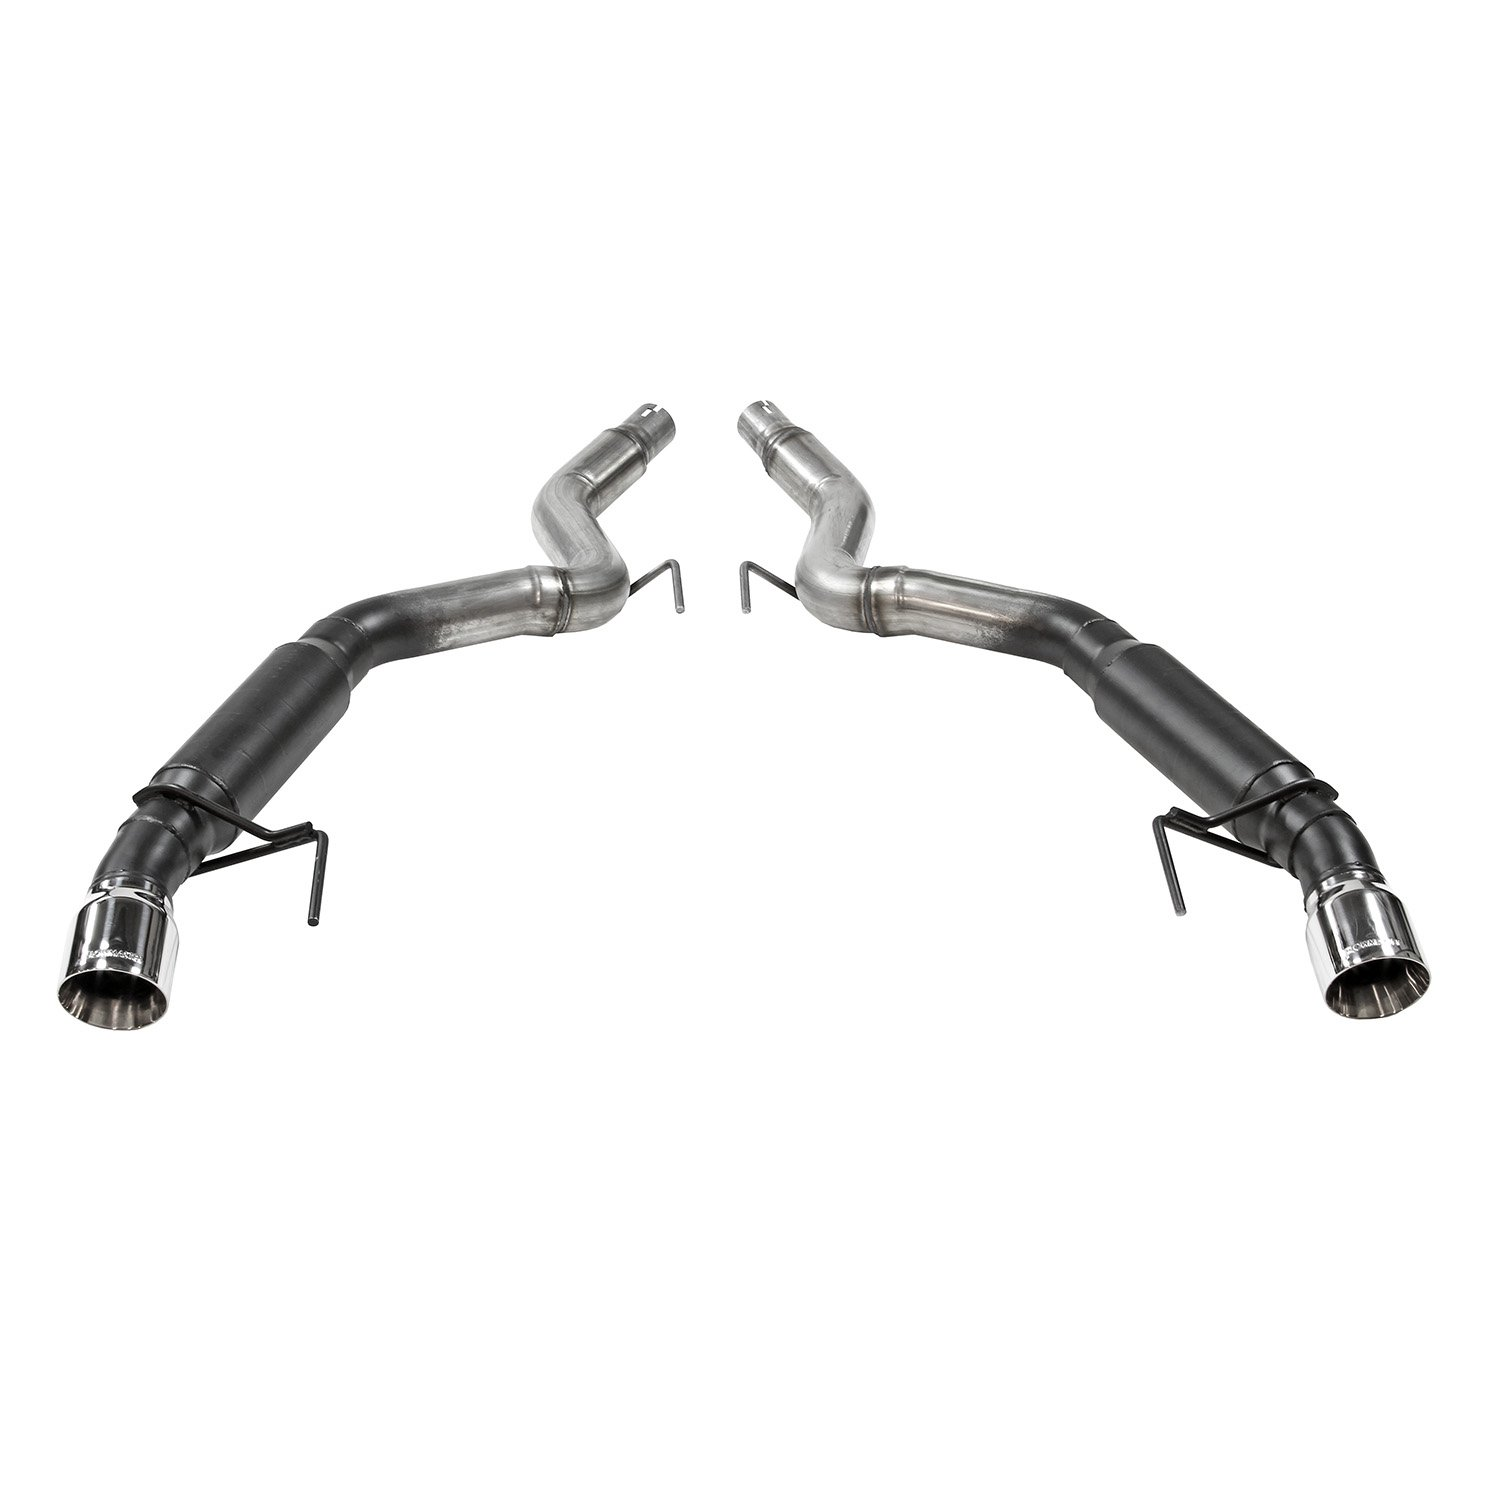 Flowmaster Flowmaster Outlaw Axle Back Exhaust System